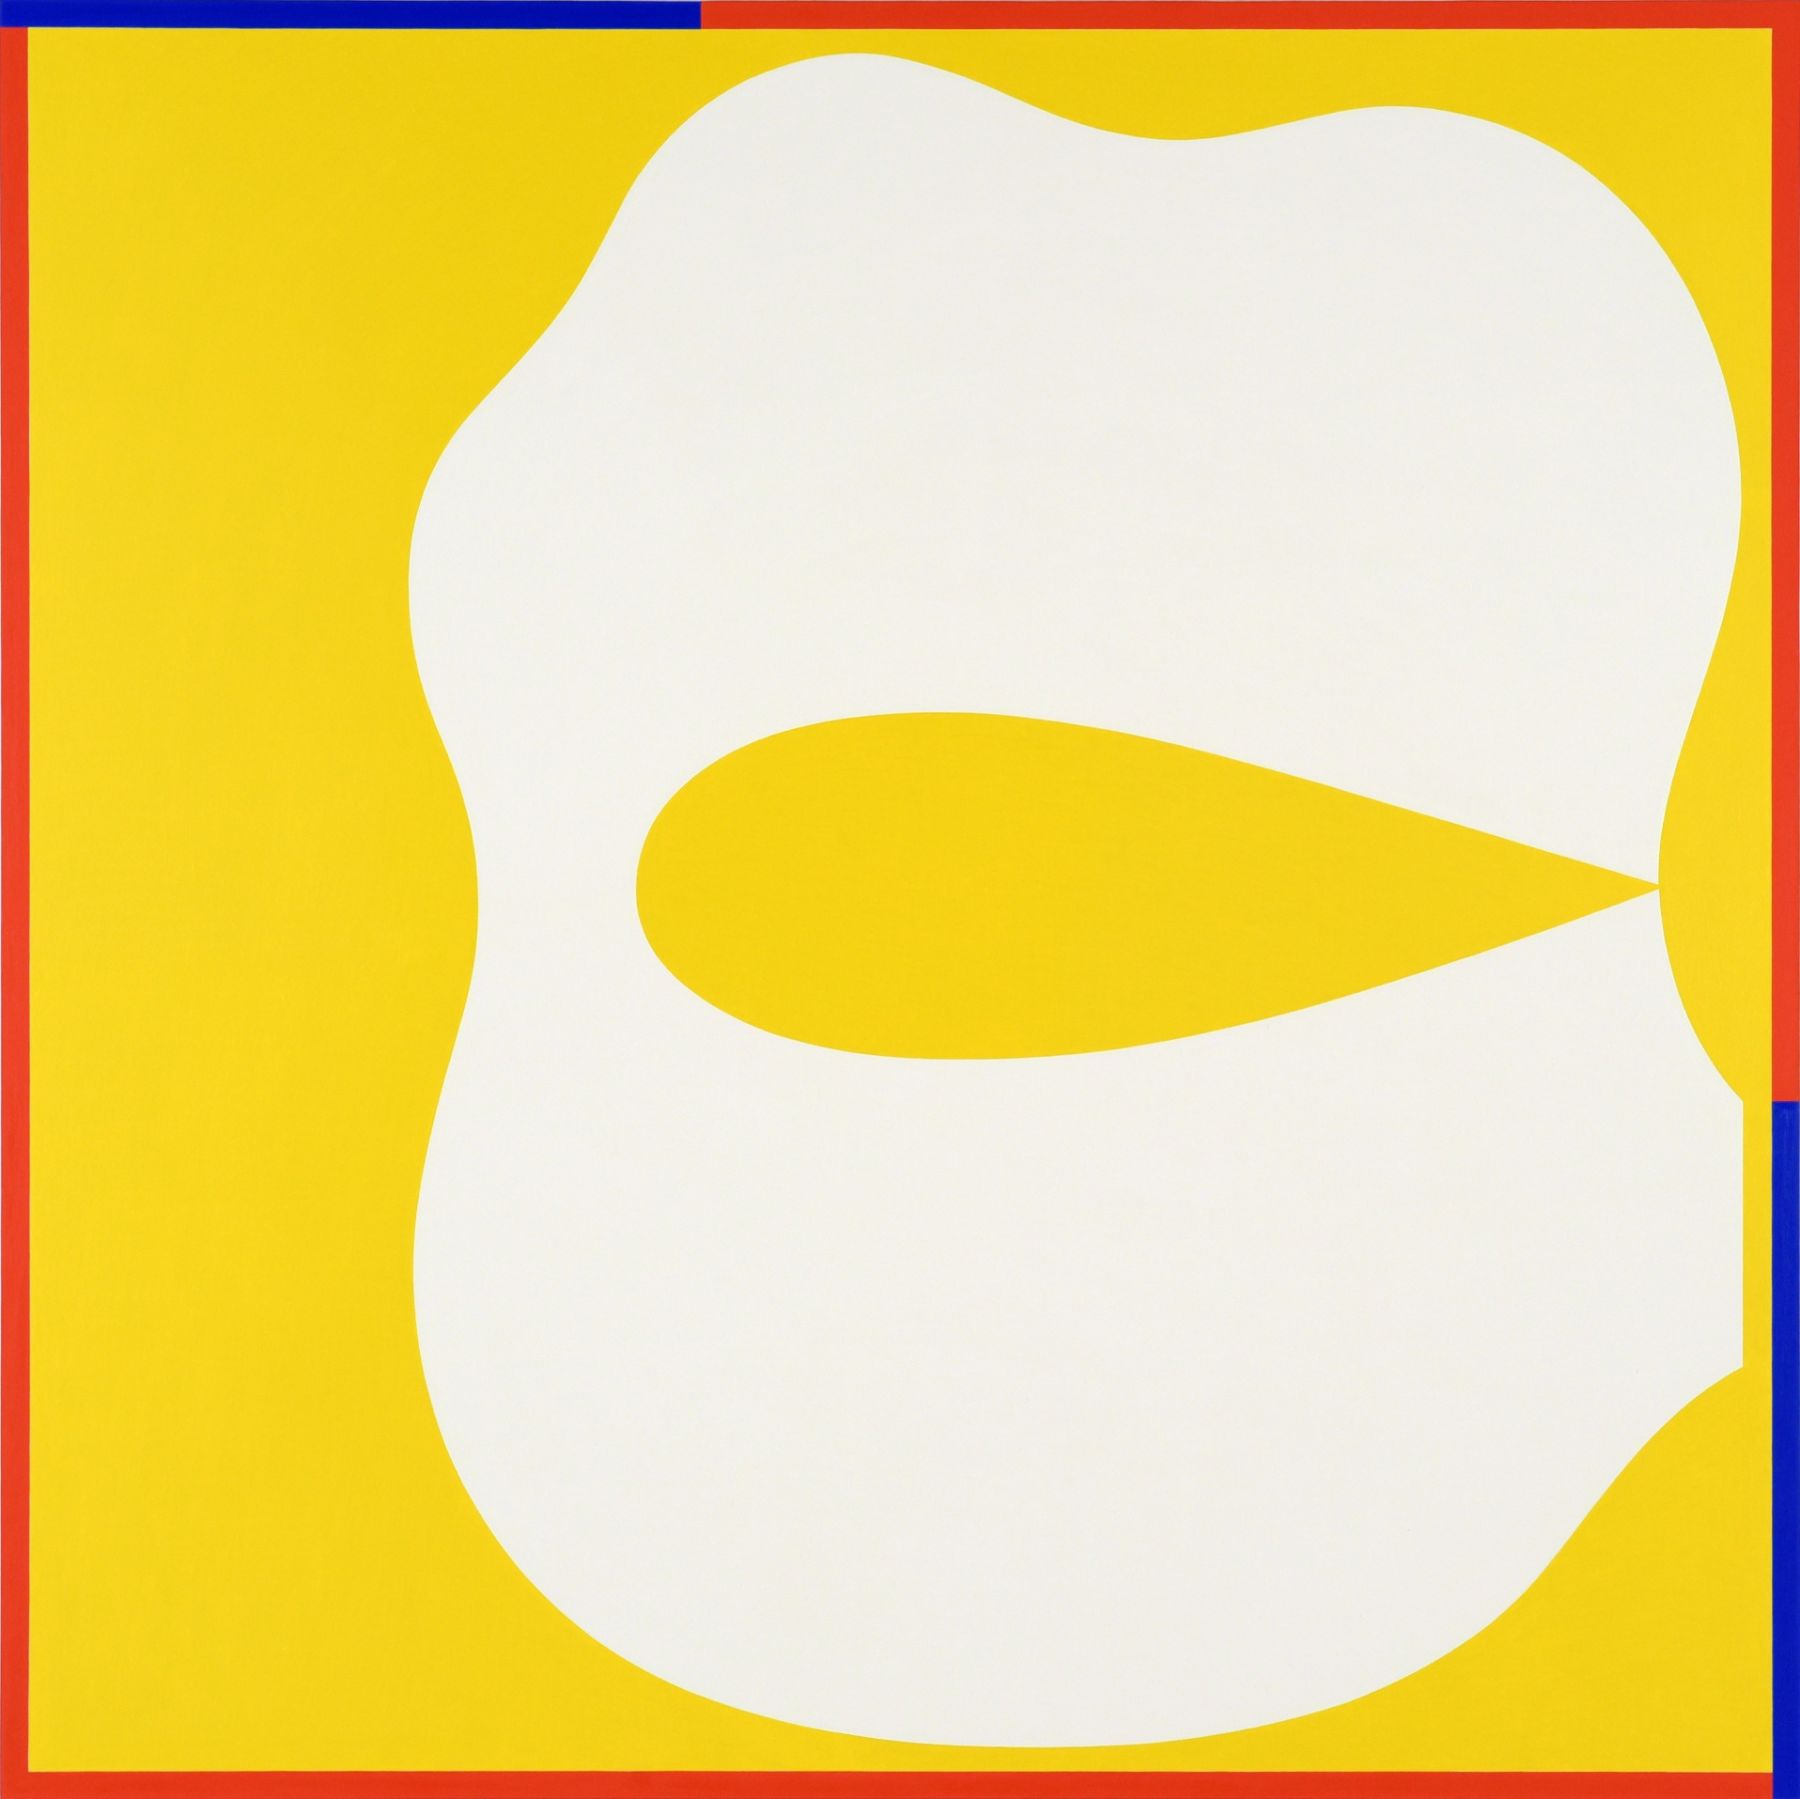 Cary Smith Shape #2 (yellow with red-blue border), 2017